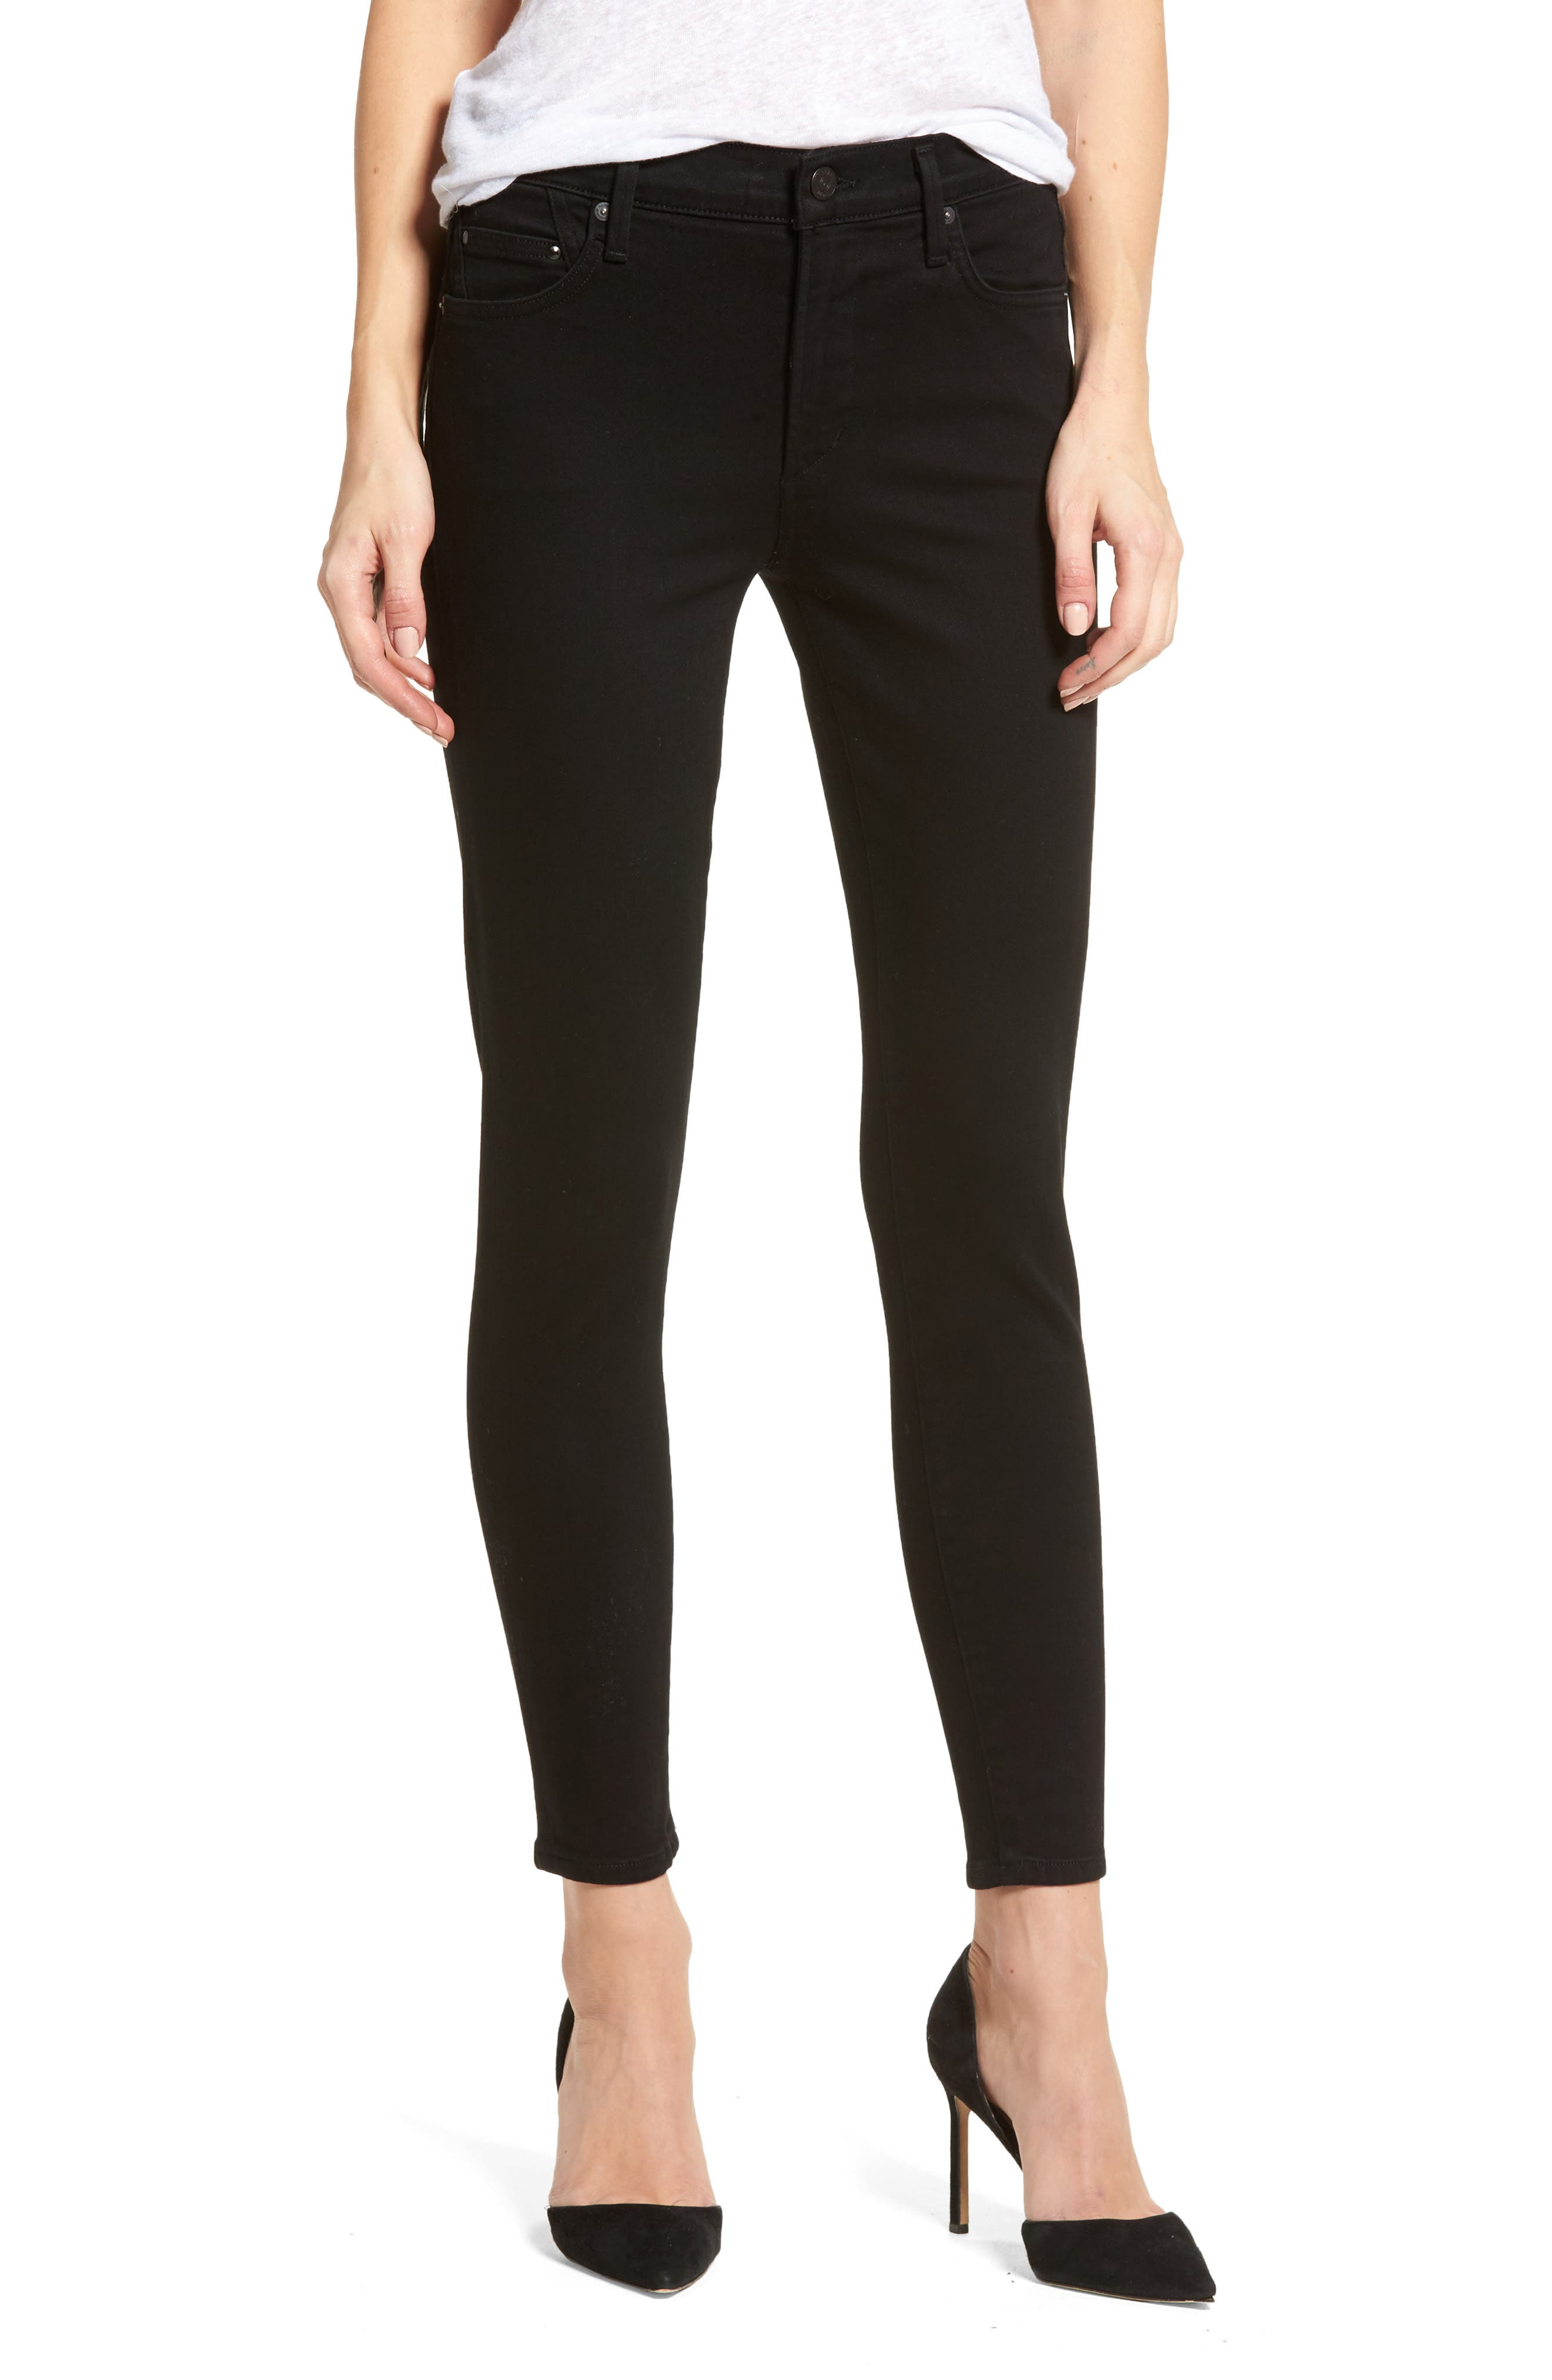 Main Image - Citizens of Humanity Rocket Skinny Jeans (Blackbird) (Petite)